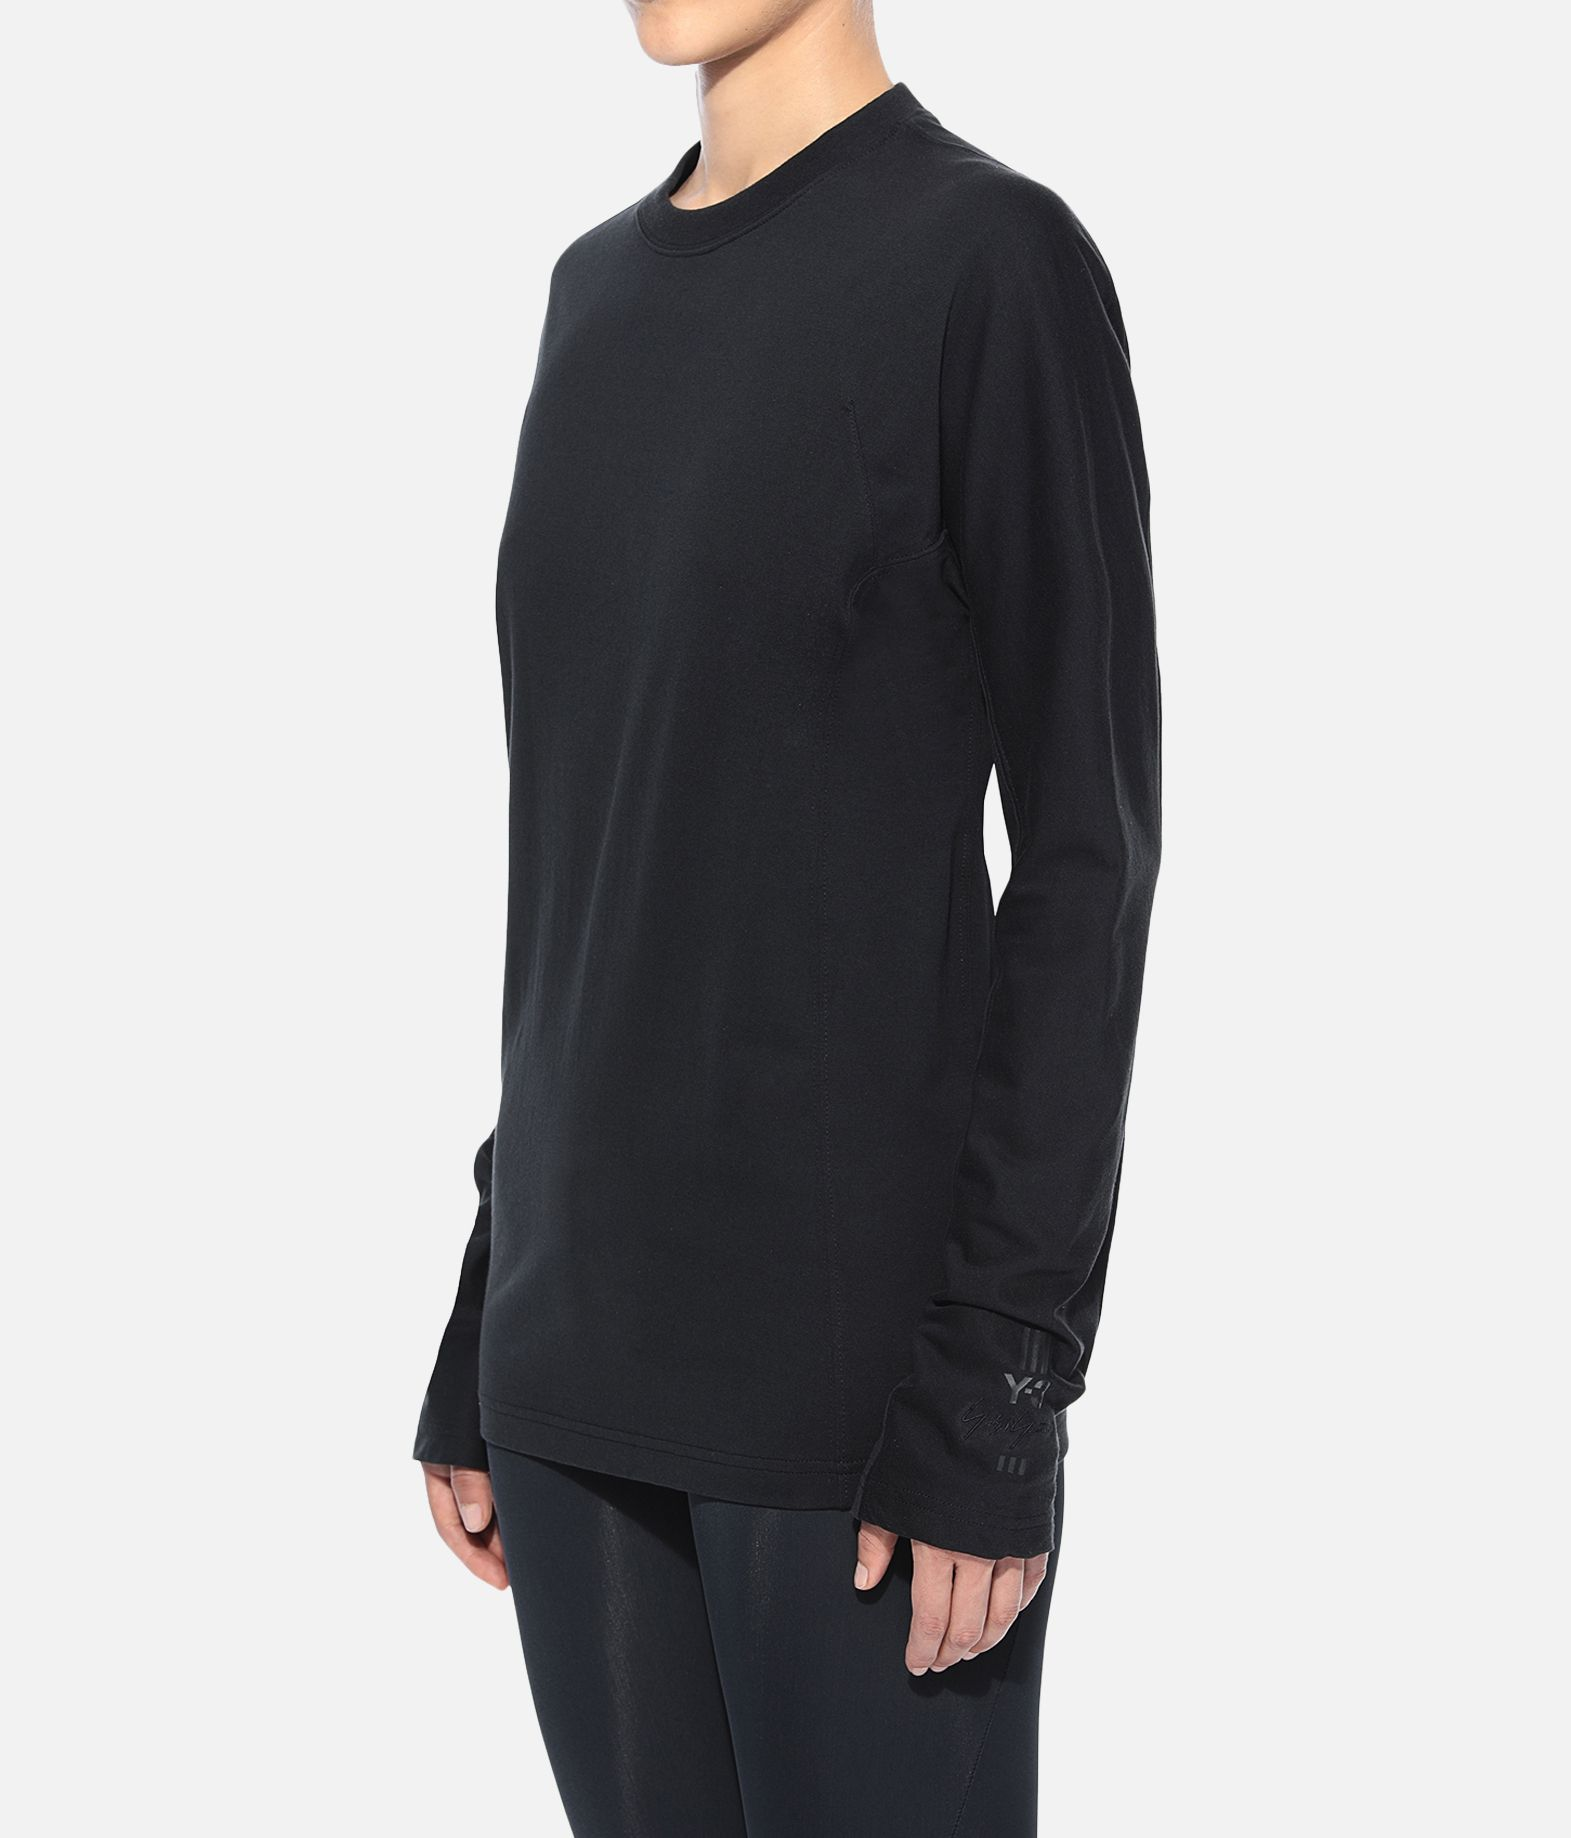 Y-3 Y-3 Classic Tee Long sleeve t-shirt Woman e